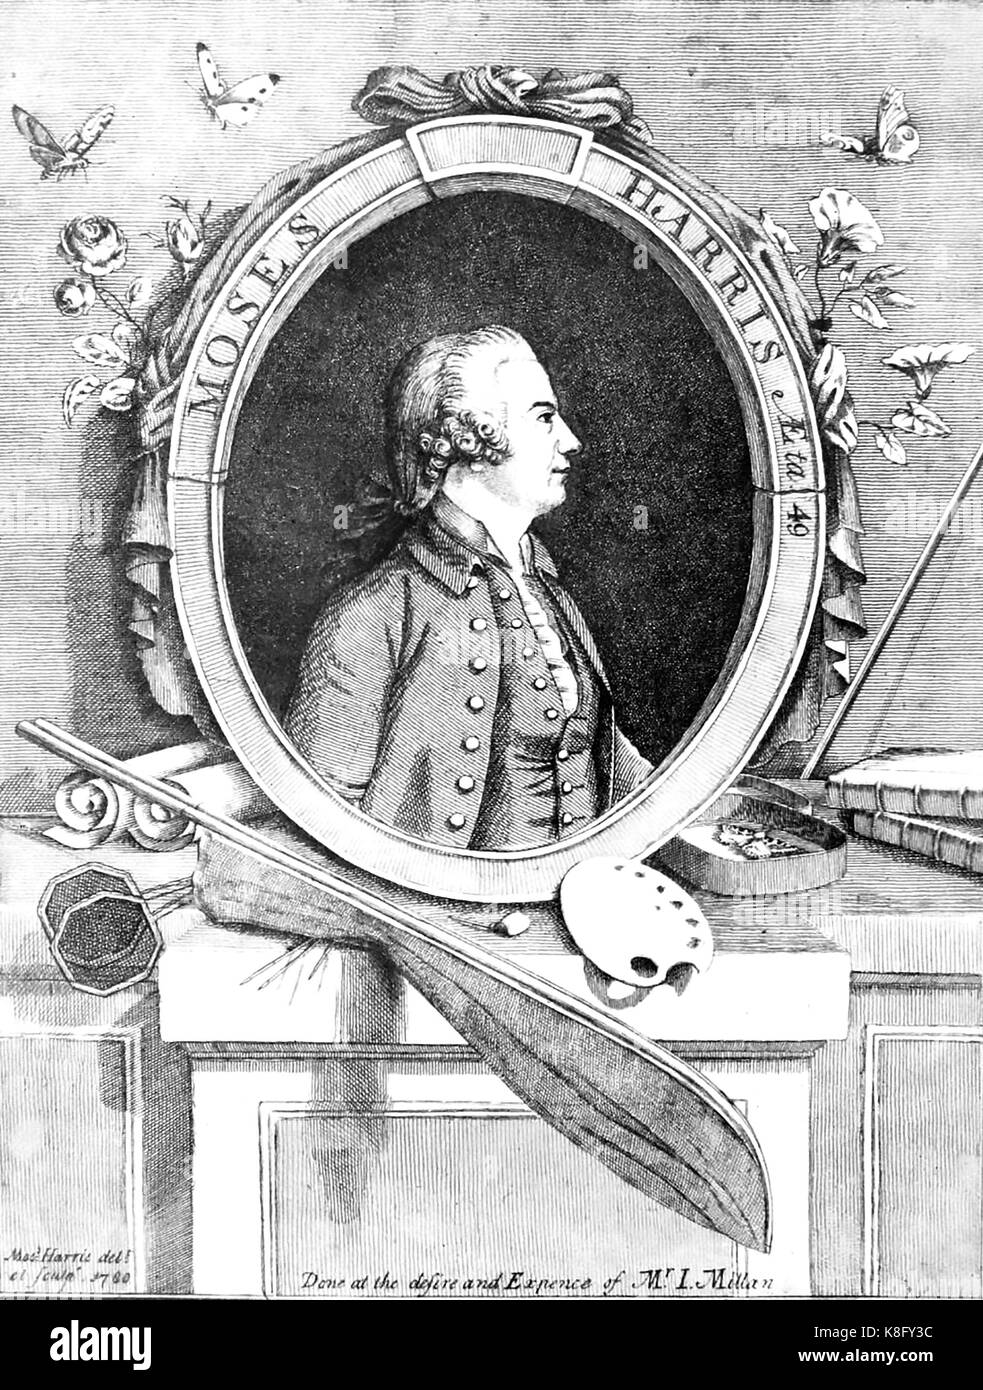 MOSES HARRIS (1730-c 1788) English engraver and entomologist. His own engraving from 1760 produced for an admirer. - Stock Image